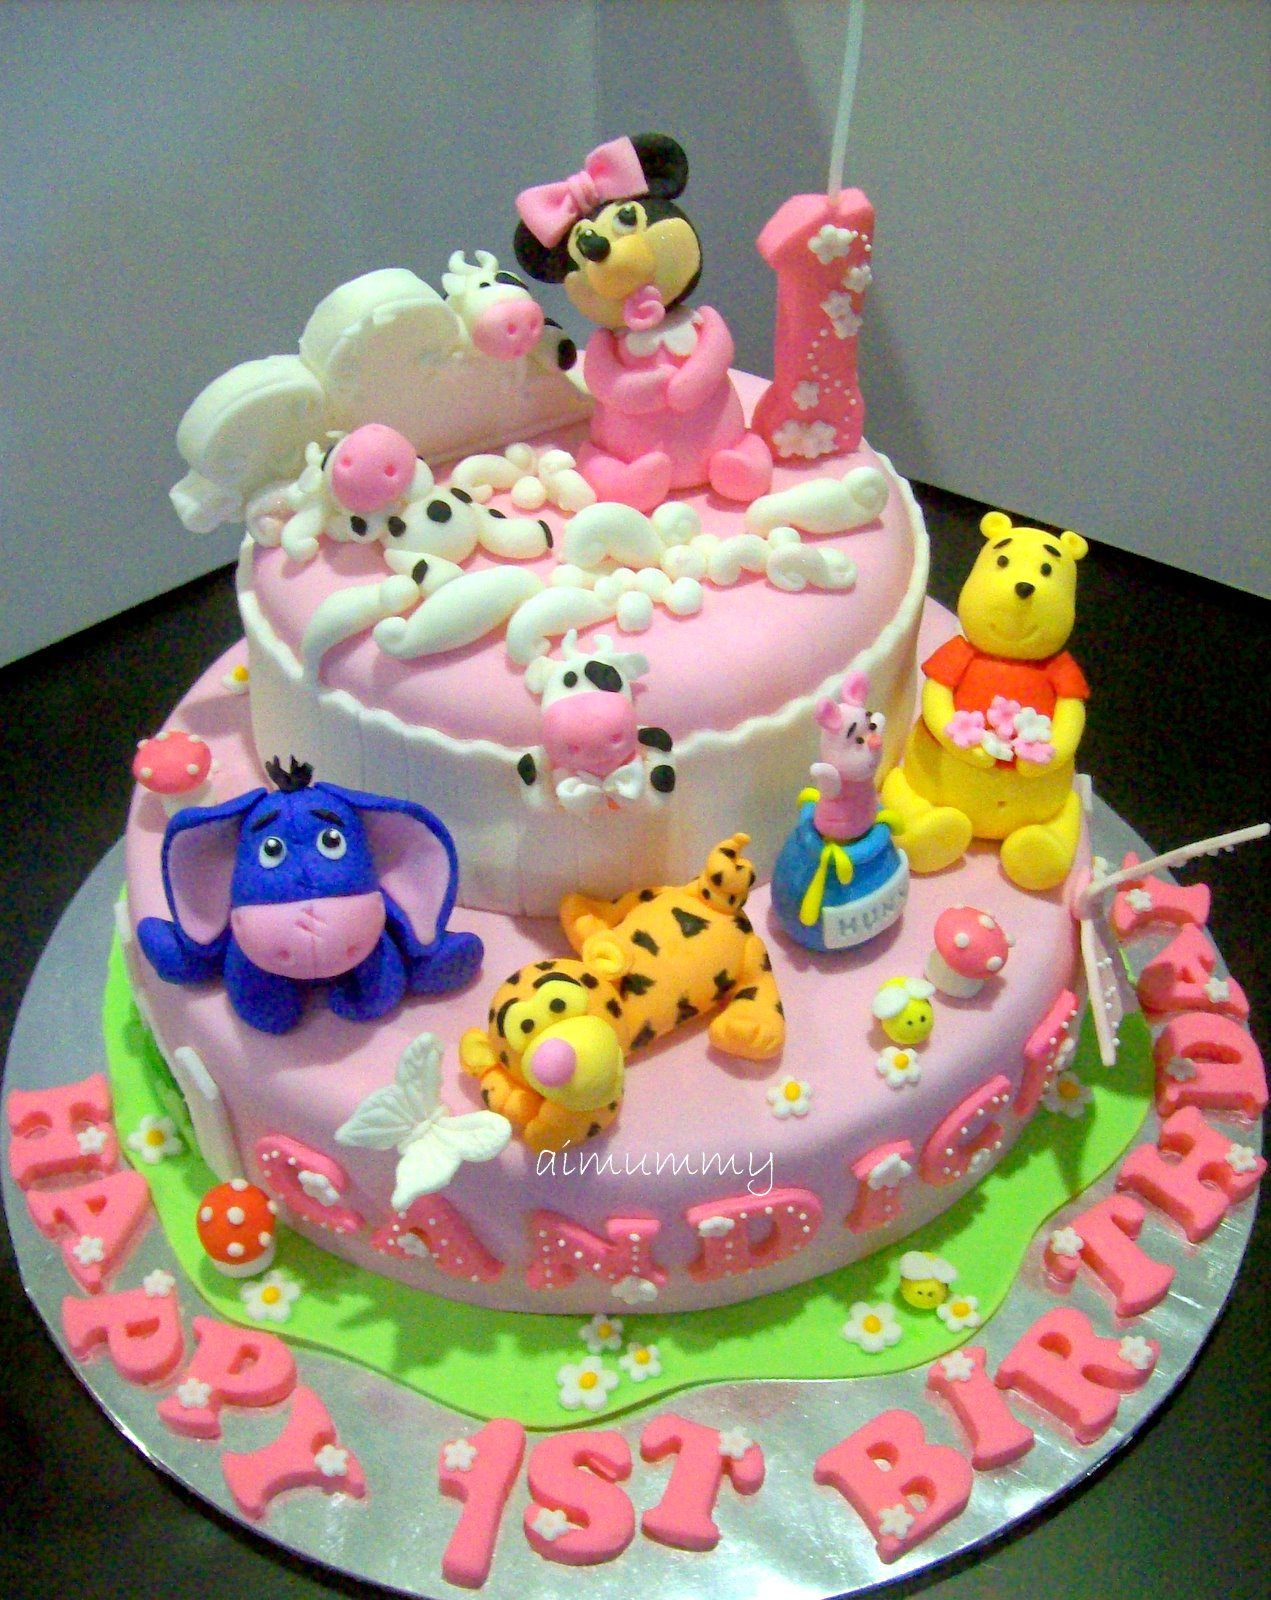 Birthday Cake Designs For Girlfriend : AiMummy: Another sweet pooh & minnie cake